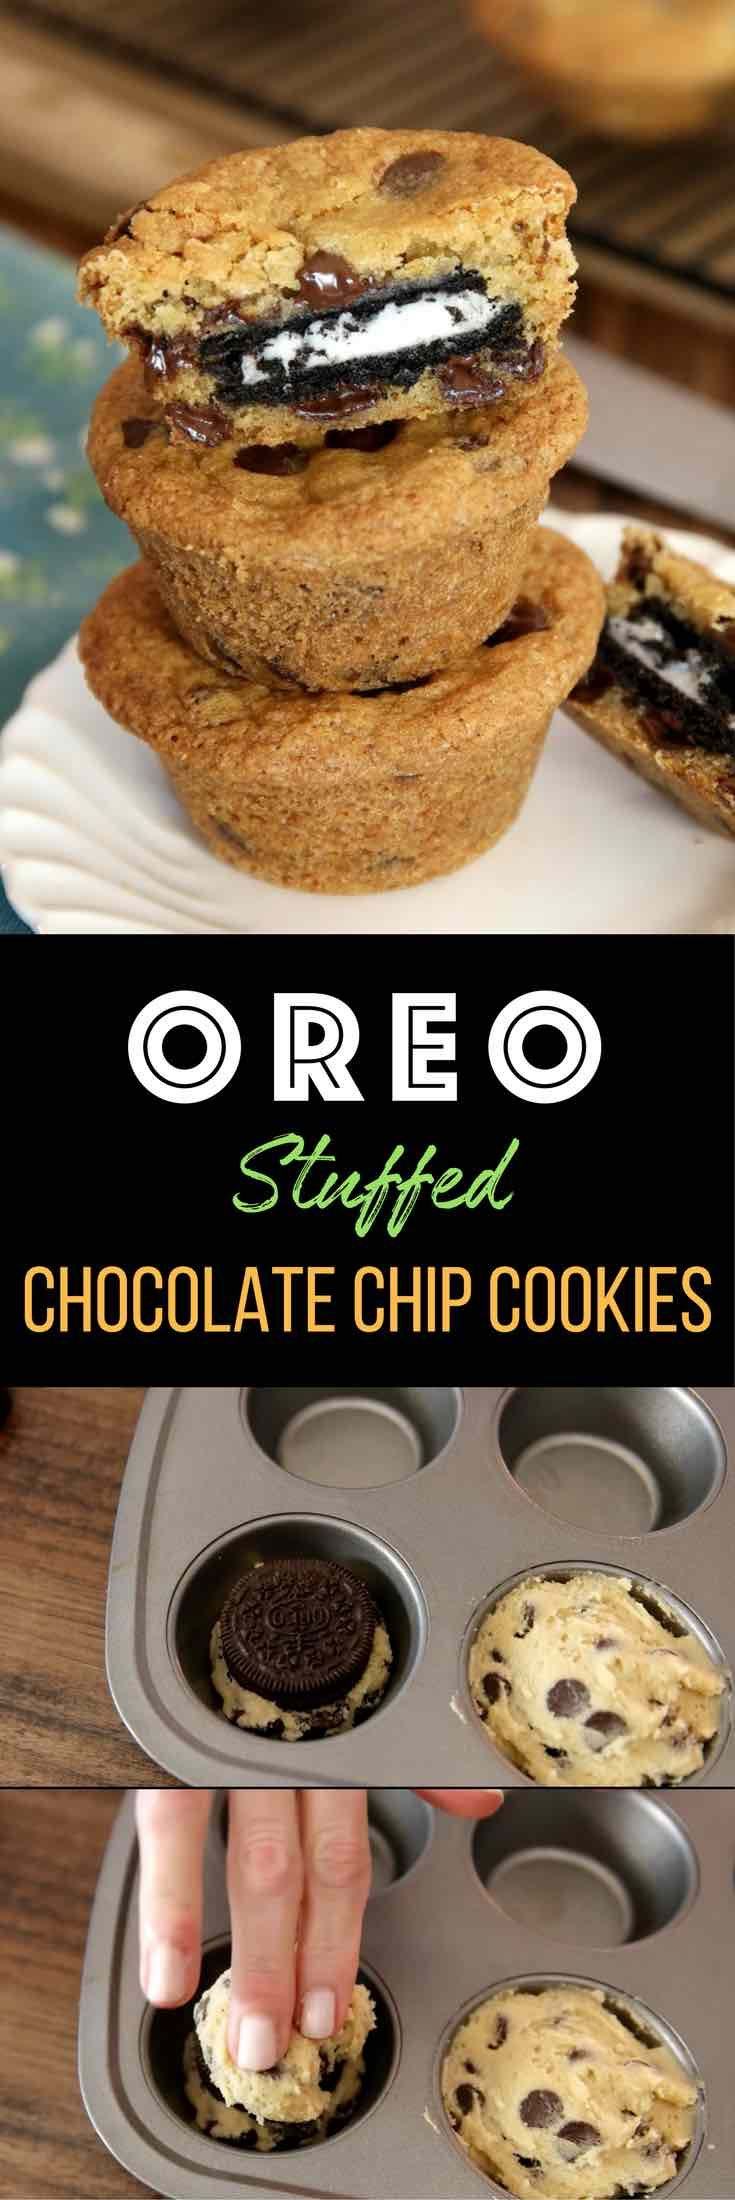 Oreo Stuffed Chocolate Chip Cookies – The BEST soft and chewy big chocolate chip cookies stuffed with Oreos! Quick and easy recipe that's so fun to make! All you need is your favorite chocolate chip cookie dough and Oreos! So simple and so delicious! It's great for snack, parties, or dessert! Great for gifts too! Video recipe.   Tipbuzz.com